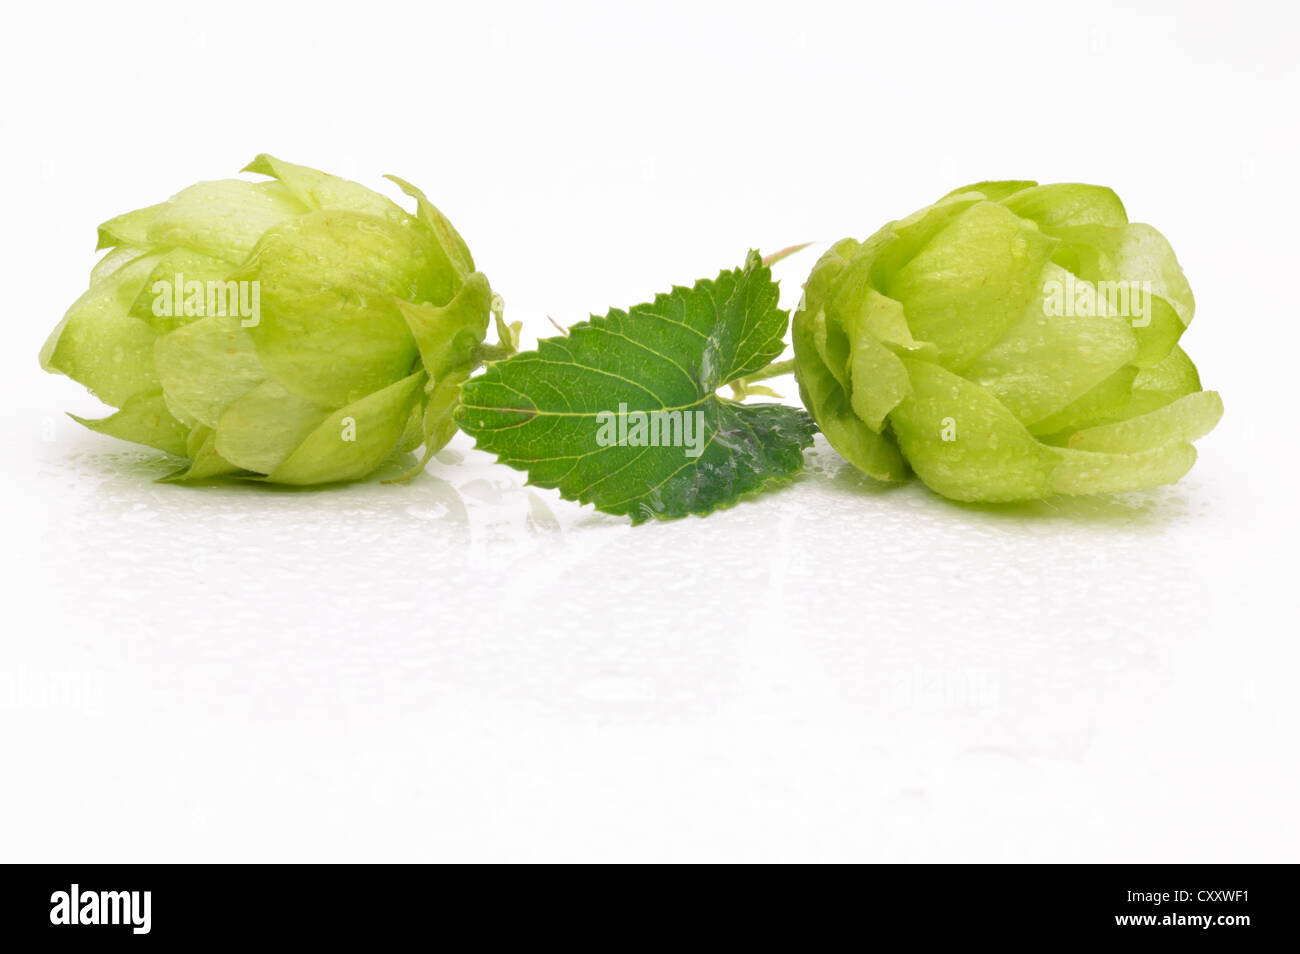 Green hop cones on a white background close-up - Stock Image